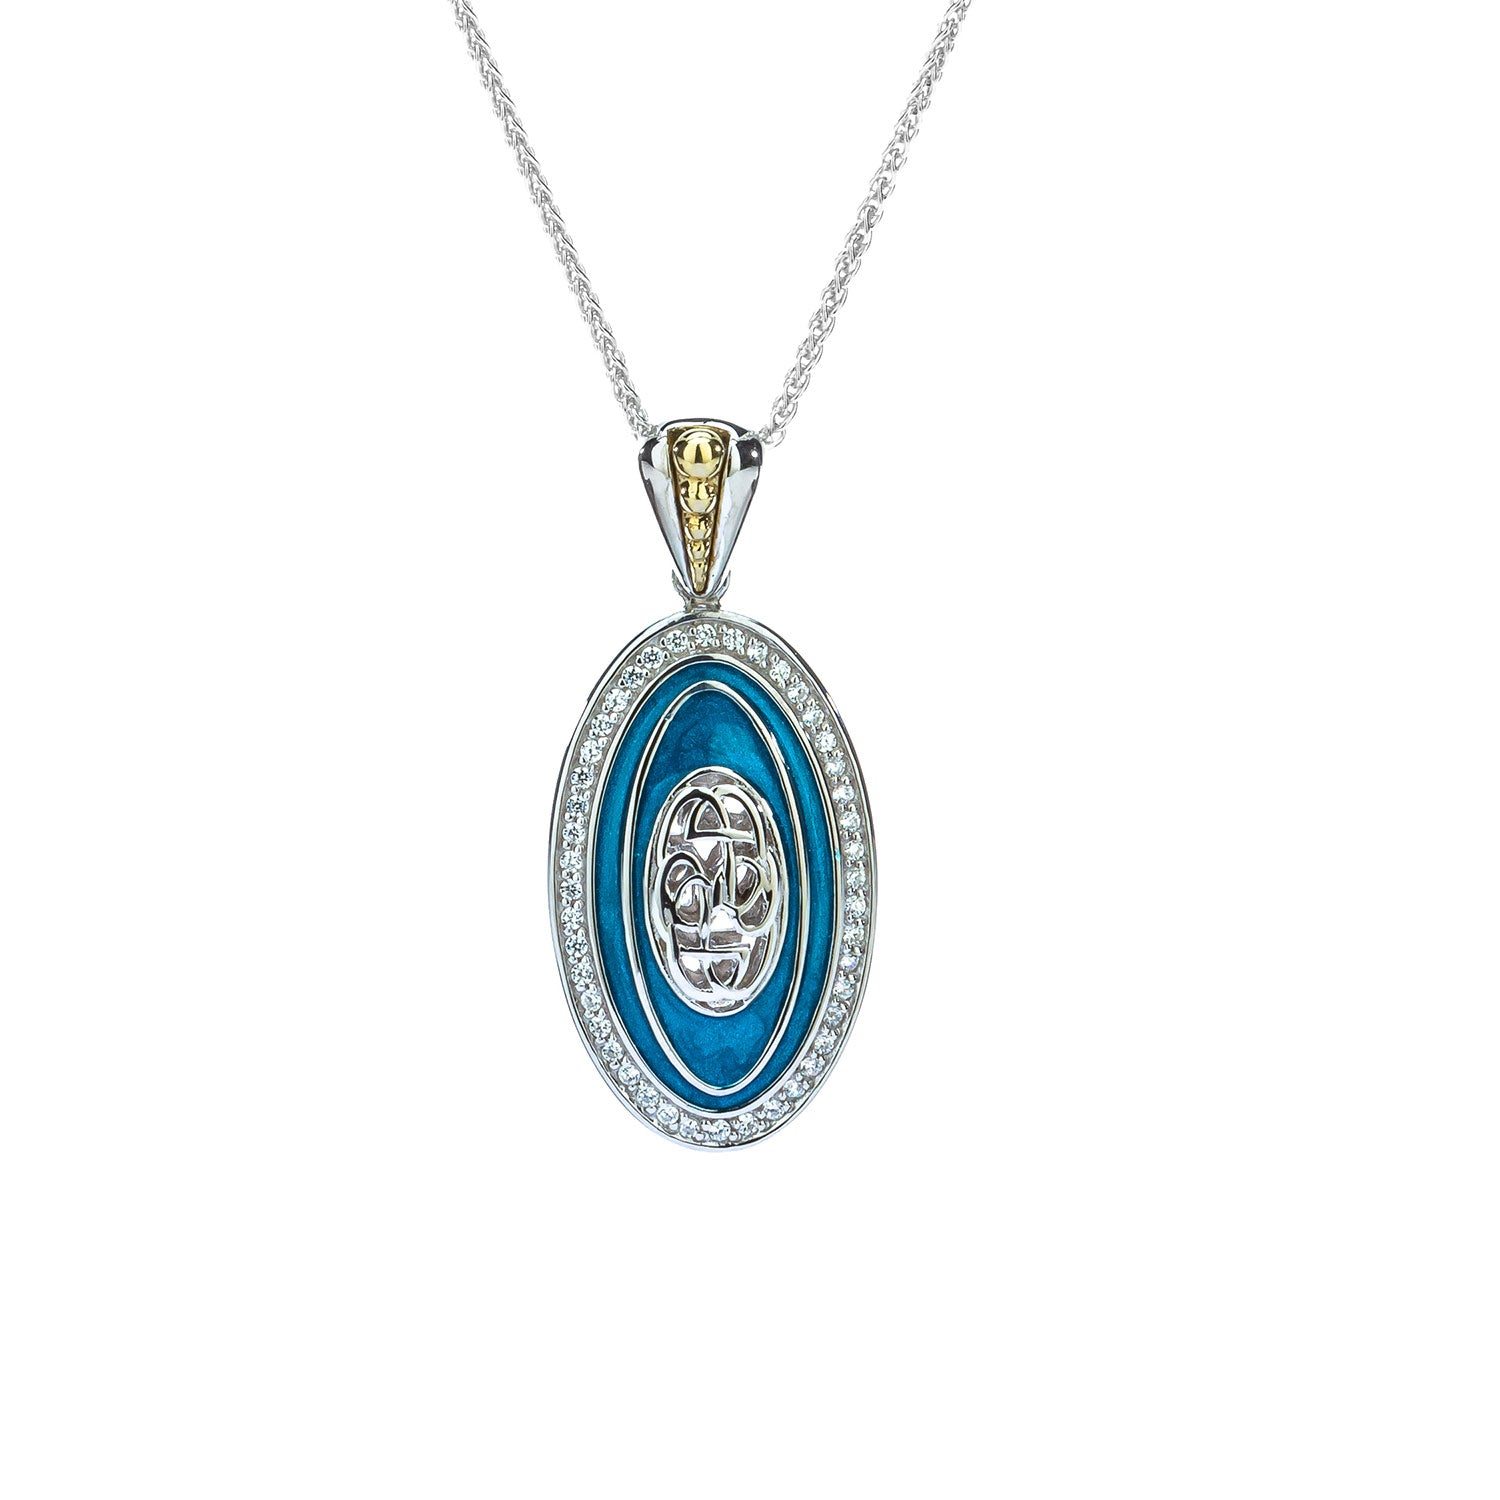 Pendant 10k Sky Blue Enamel & White CZ Path Of Life Pendant from welch and company jewelers near syracuse ny